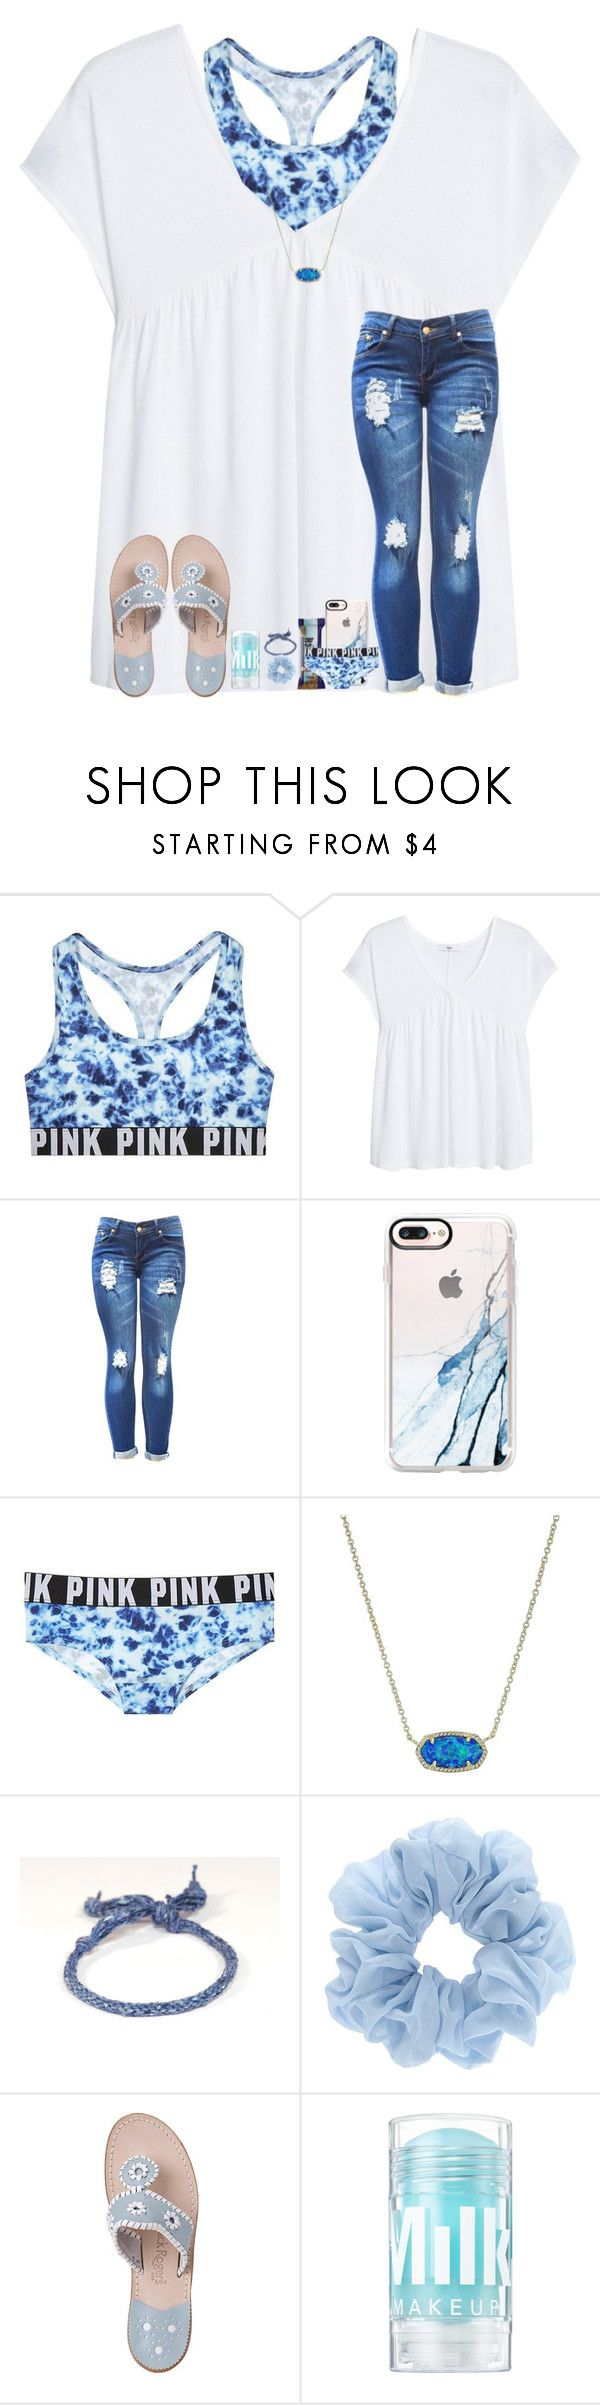 """""""Blue contest"""" by arieannahicks on Polyvore featuring Victoria's Secret, MANGO, Casetify, Kendra Scott and Jack Rogers"""